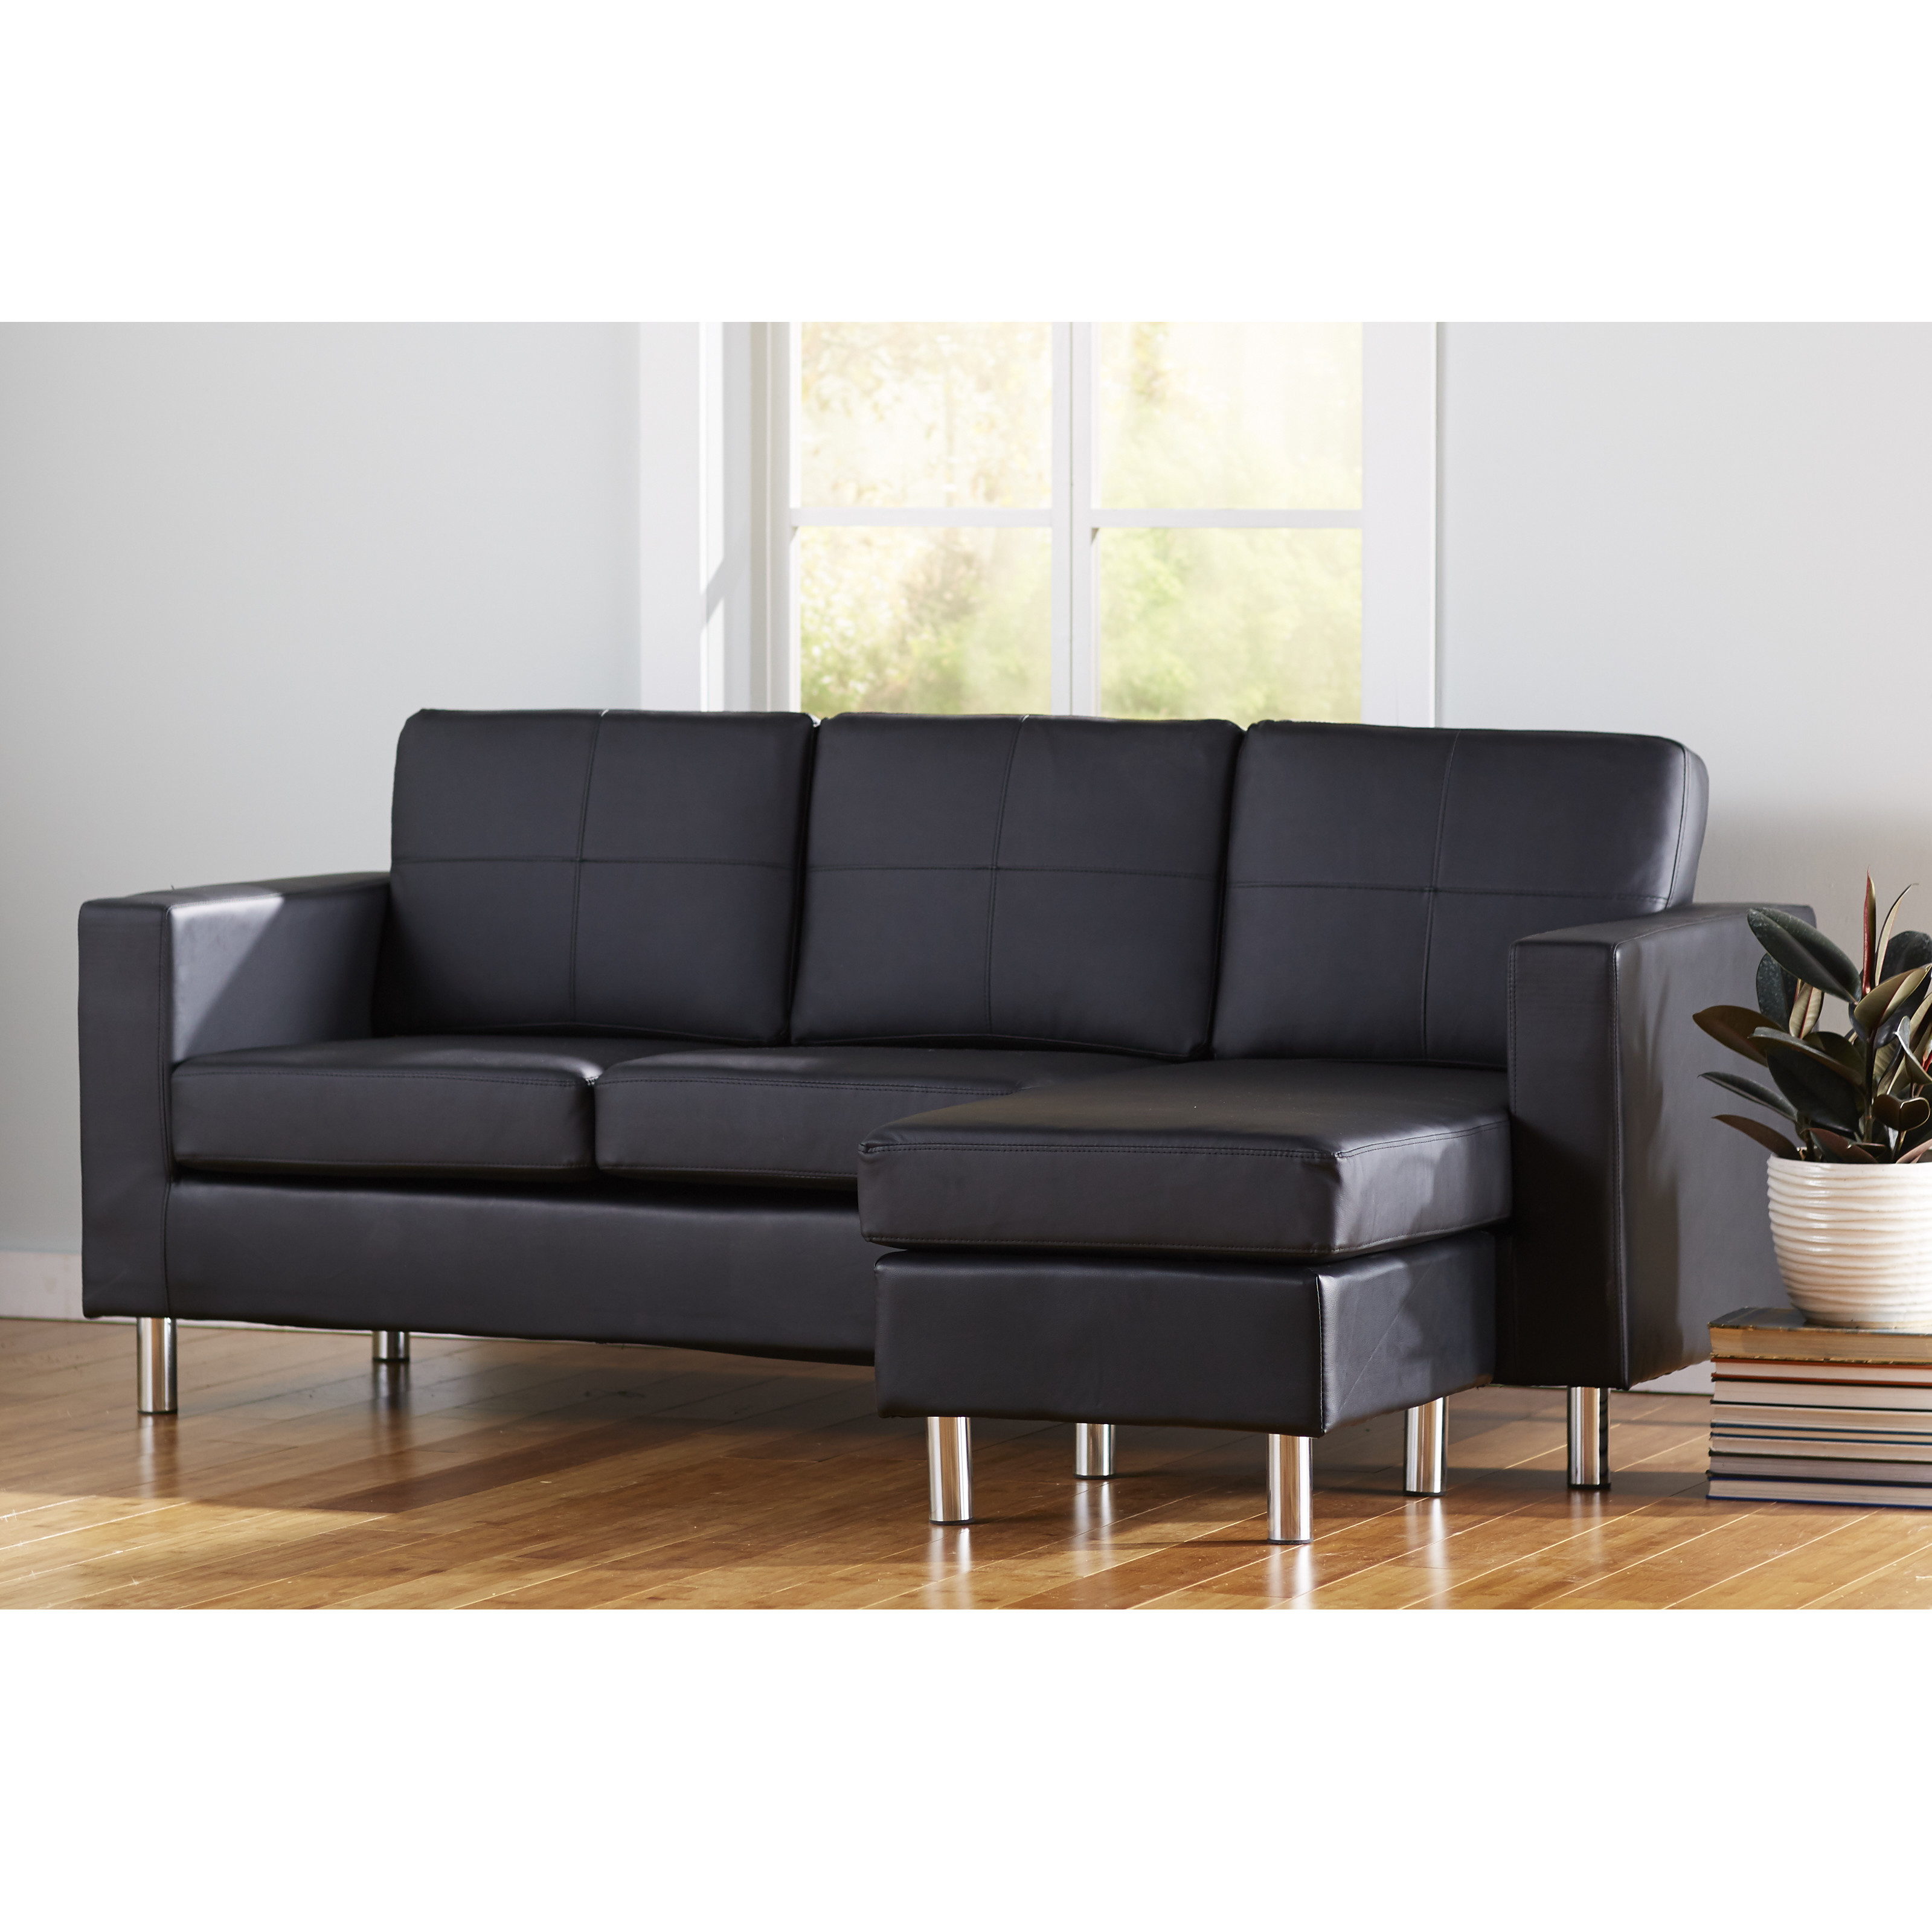 best buchannan faux leather sofa decoration-Cool Buchannan Faux Leather sofa Décor